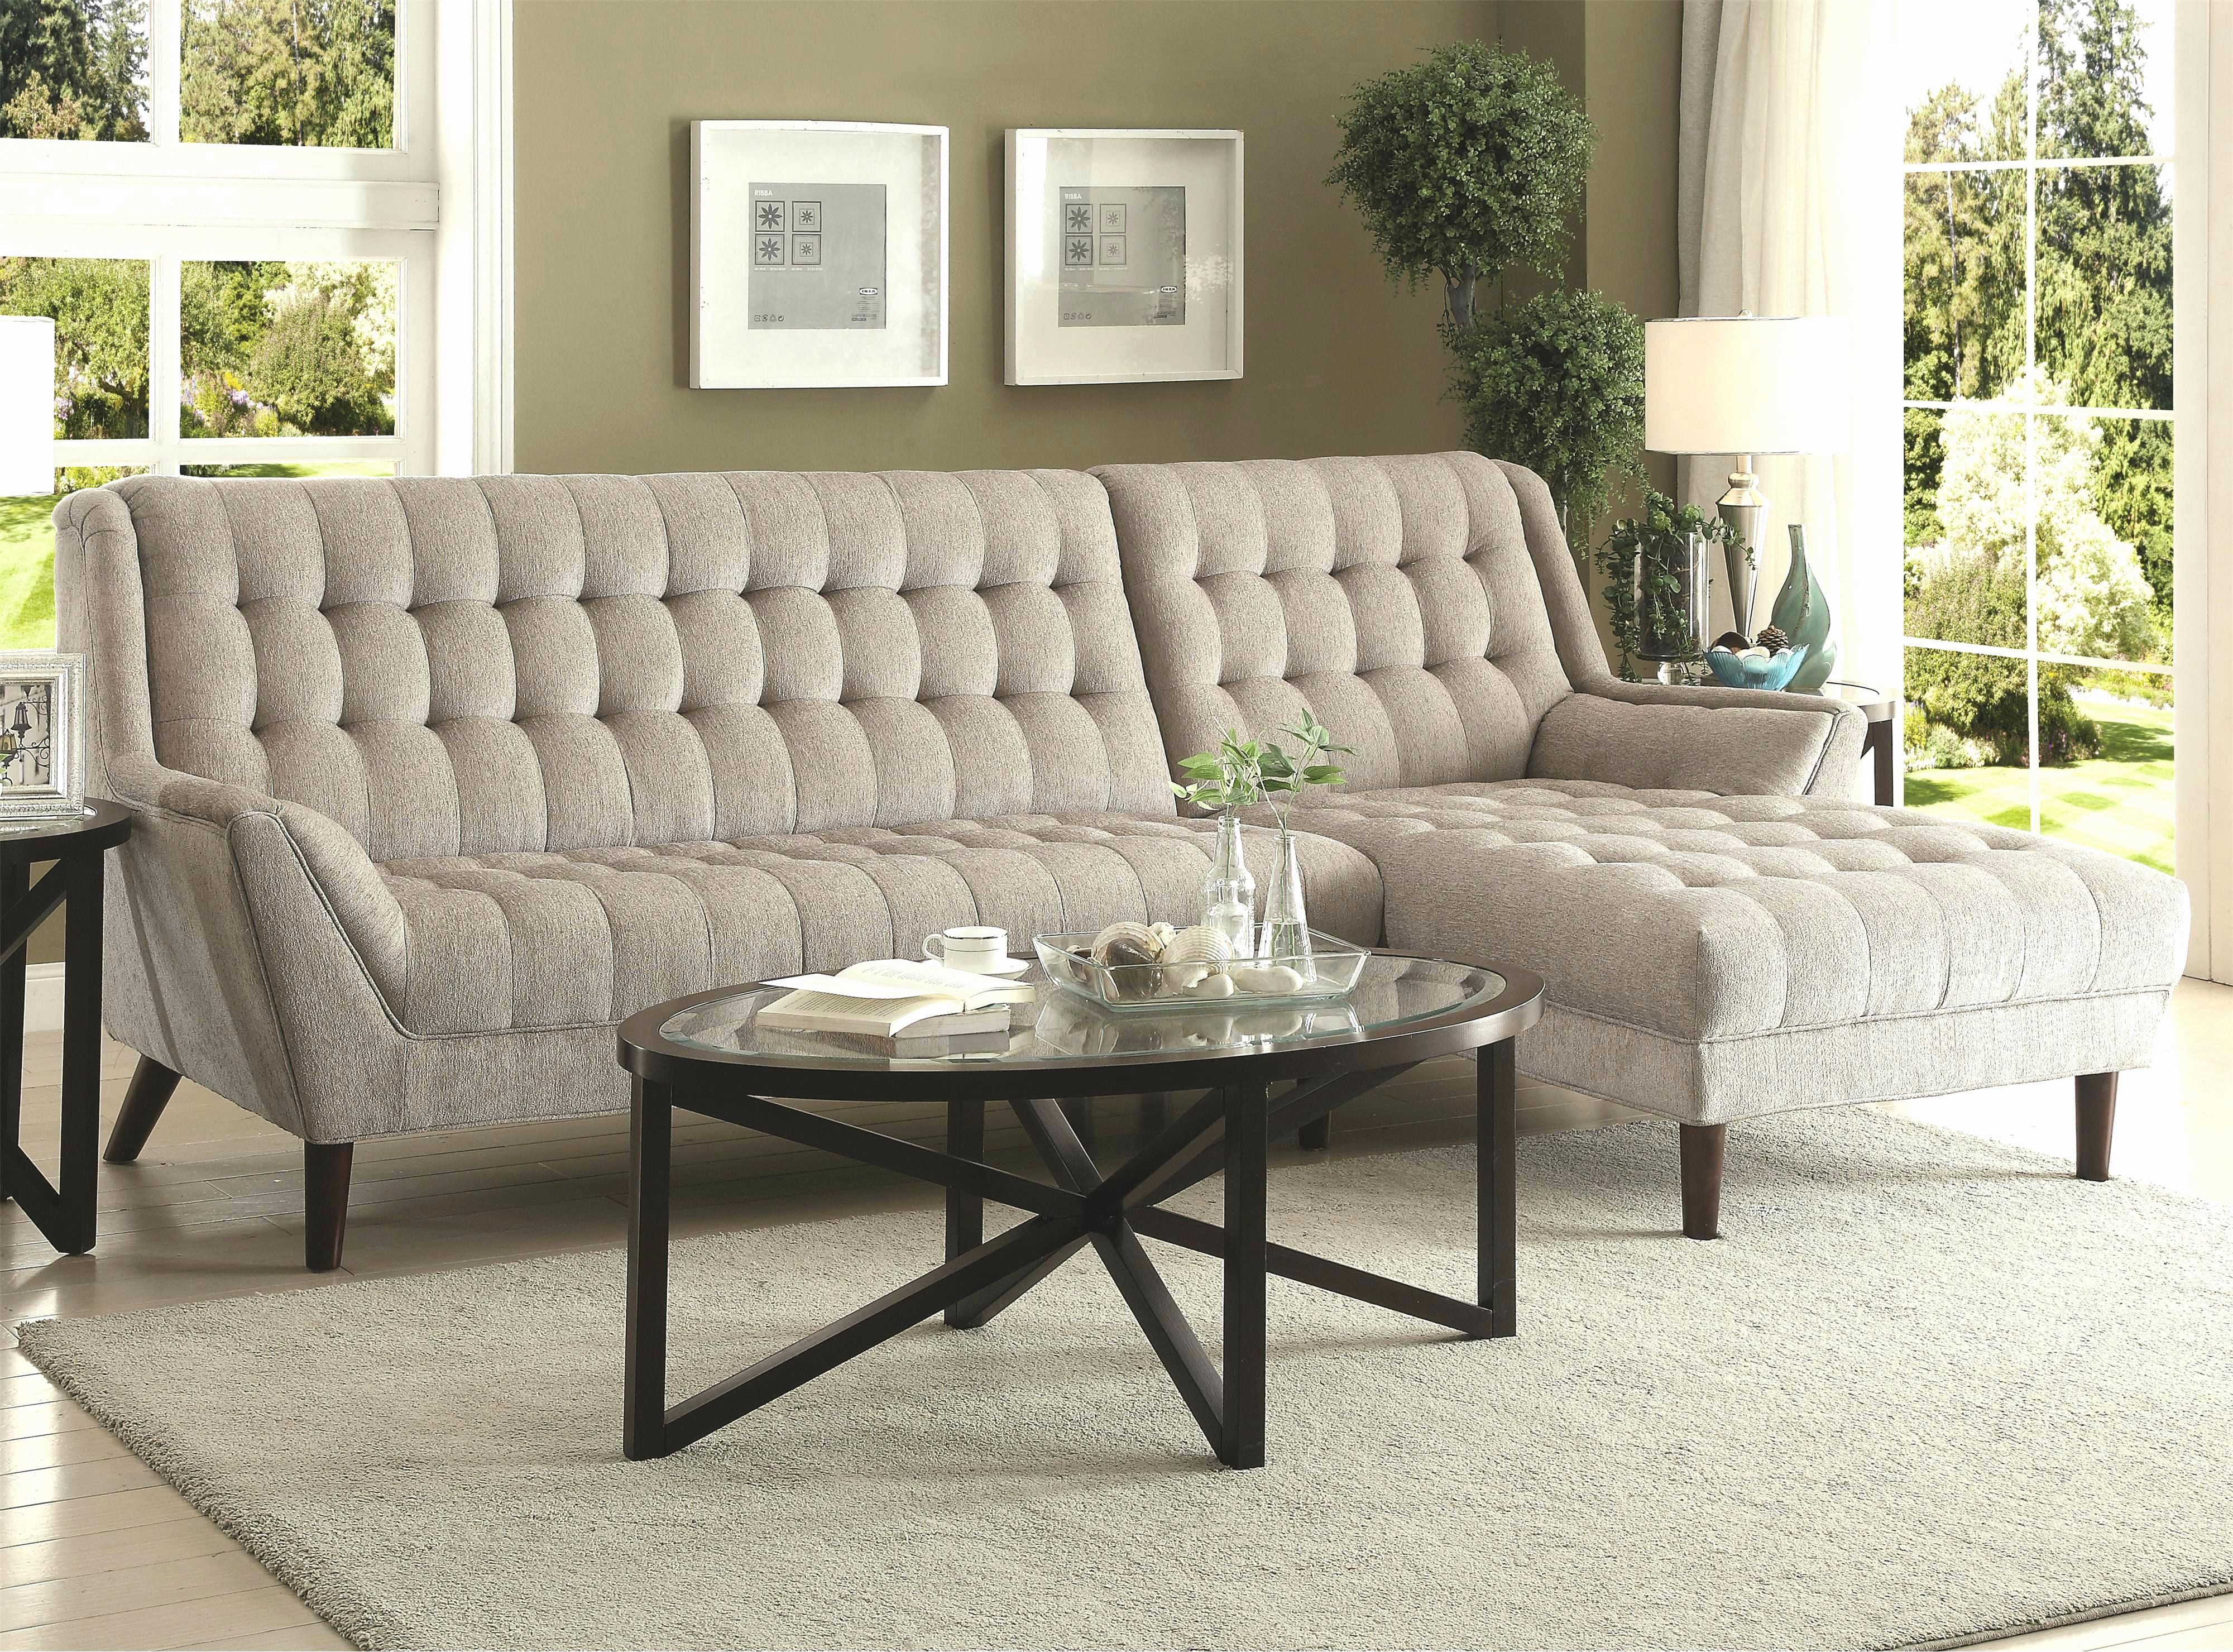 Lovely Chenille Sectional Sofa Graphics Chaise Gallery Of Lovely Chenille  Sectional Sofa With Chaise In